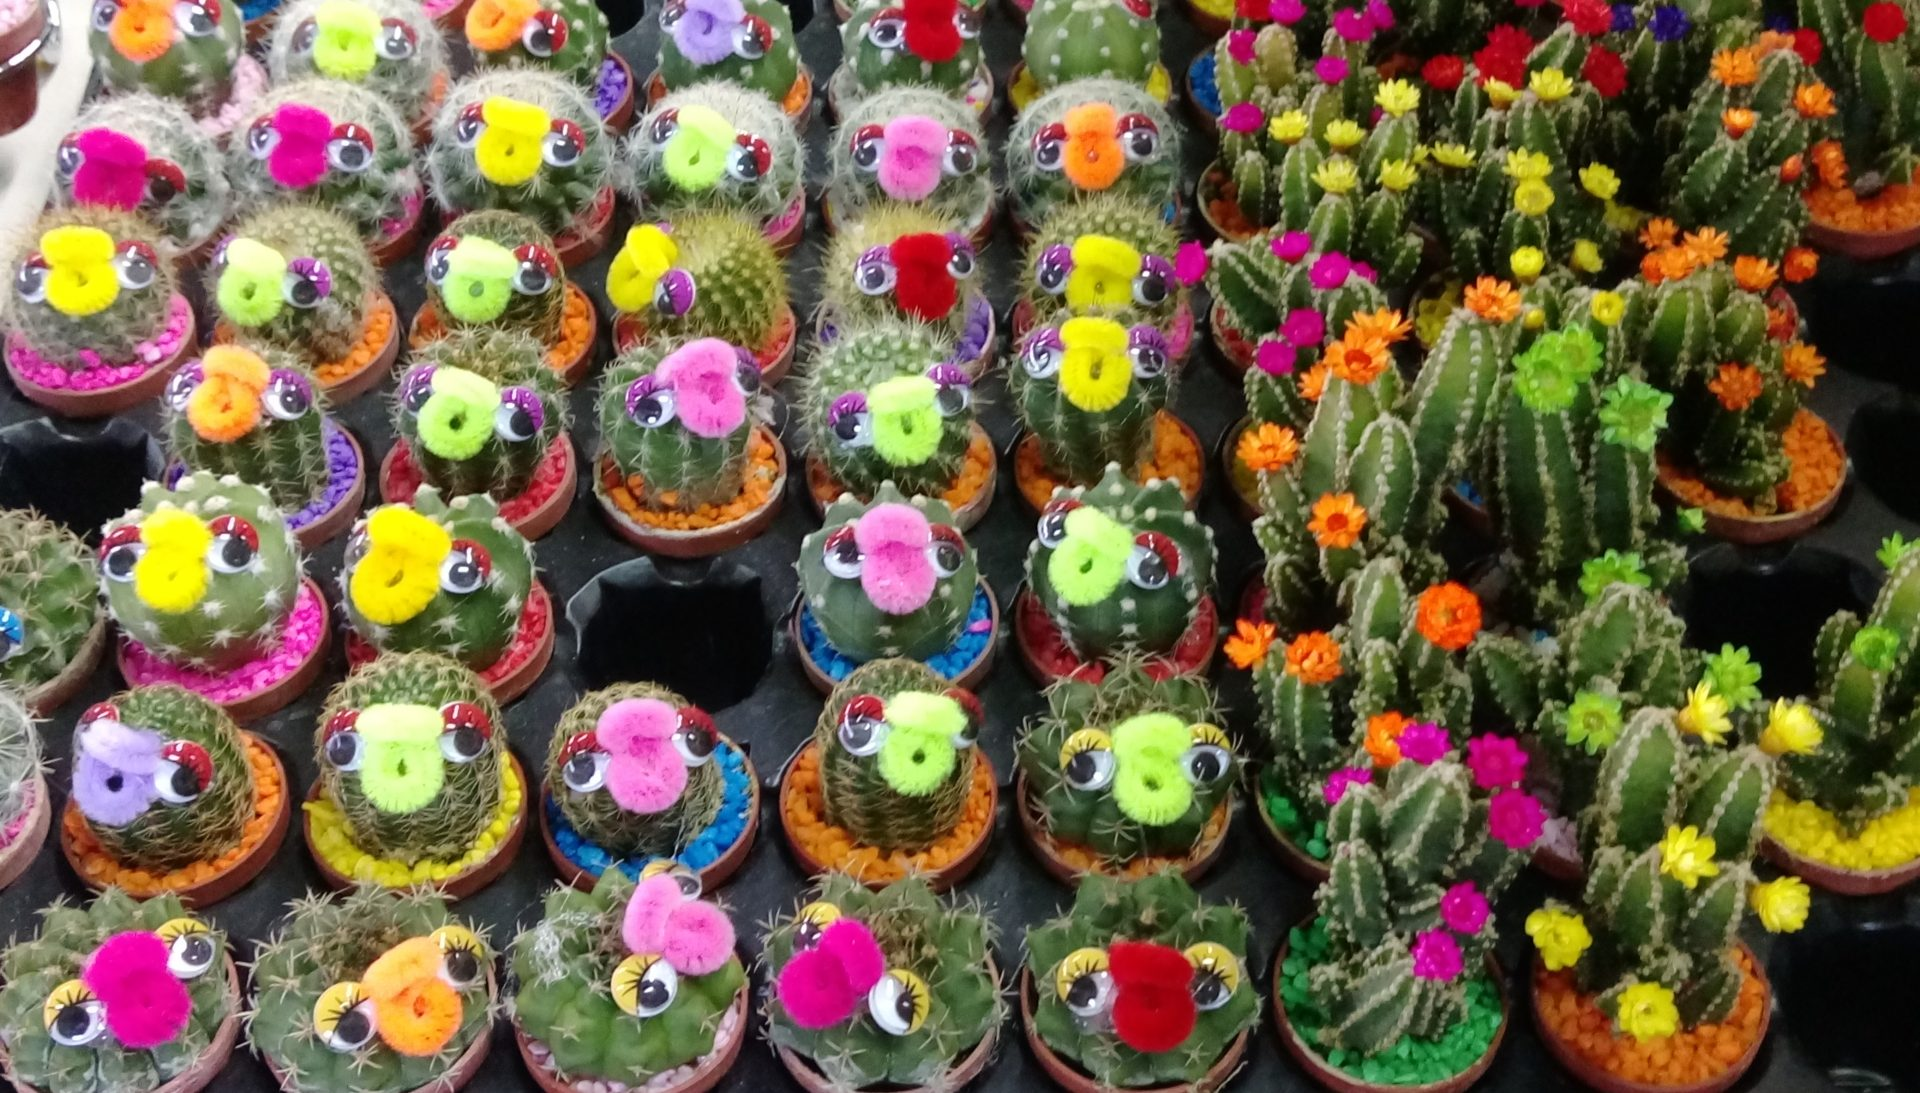 A variety of flower plants are sold at the shops in Yangmingshan's Zhuzihu area. (Billy Shyu/ Vision Times)